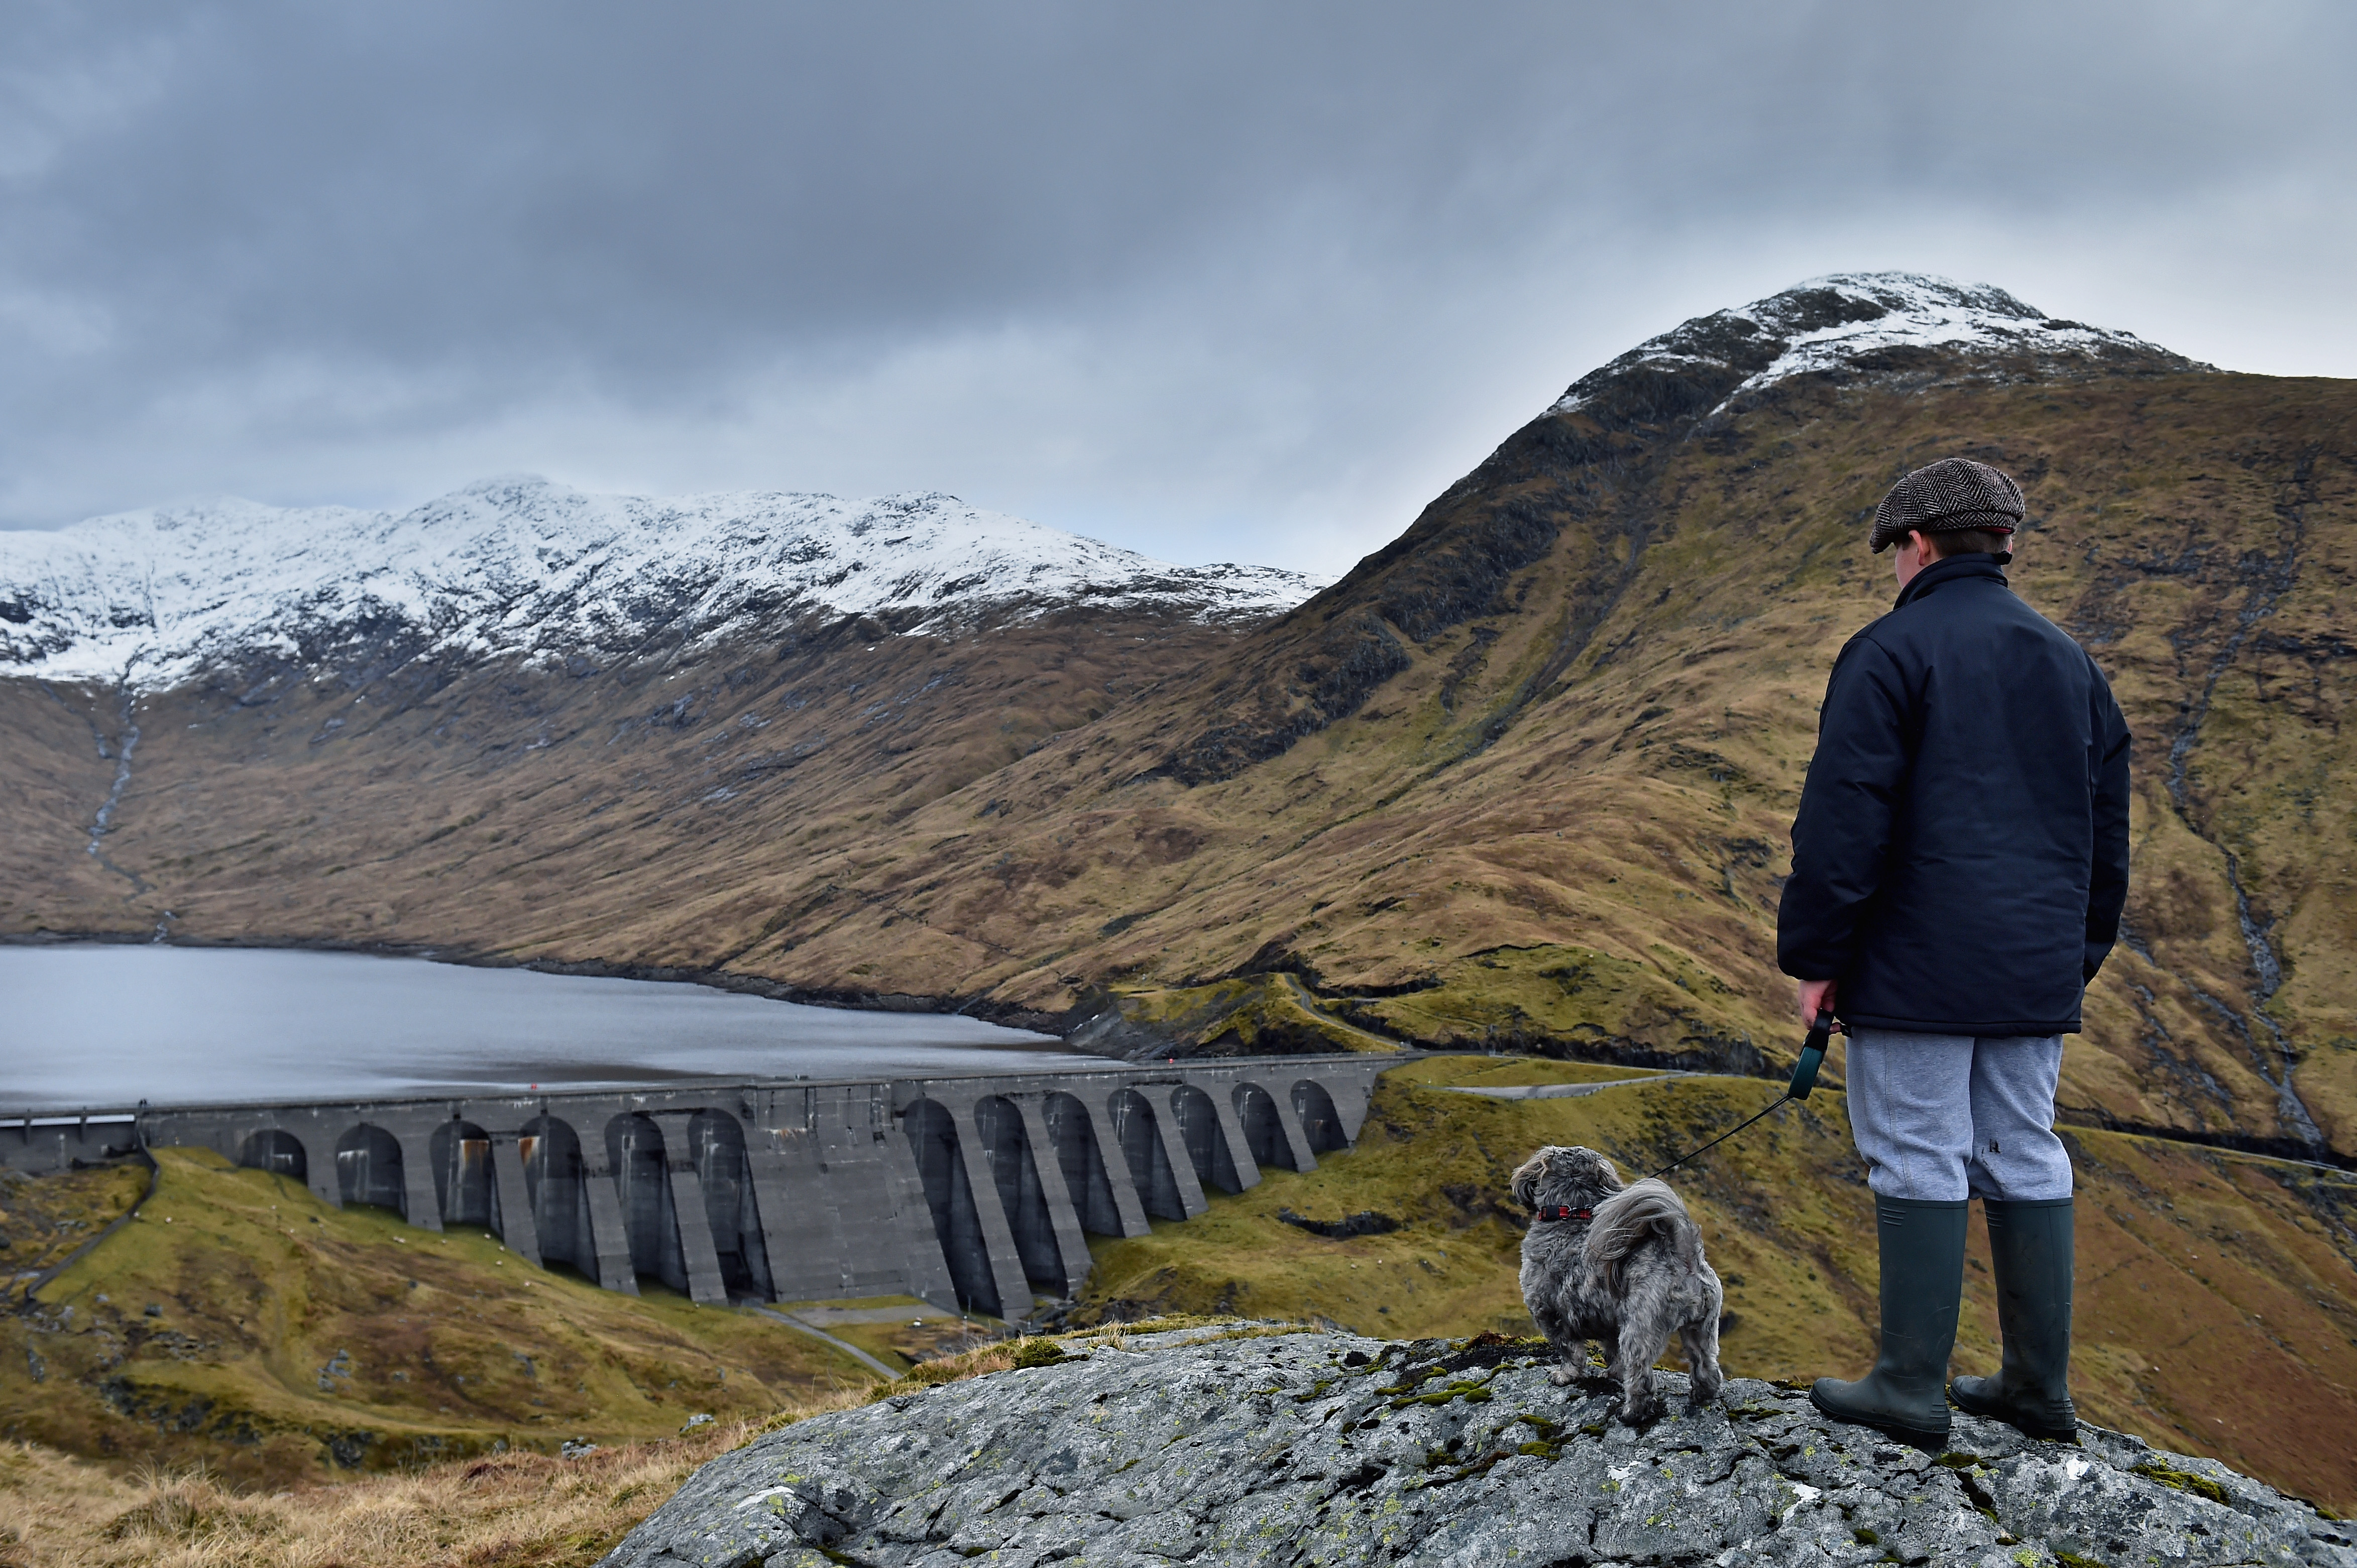 A boy and his dog view Cruachan hydro electric power station in Argyll.